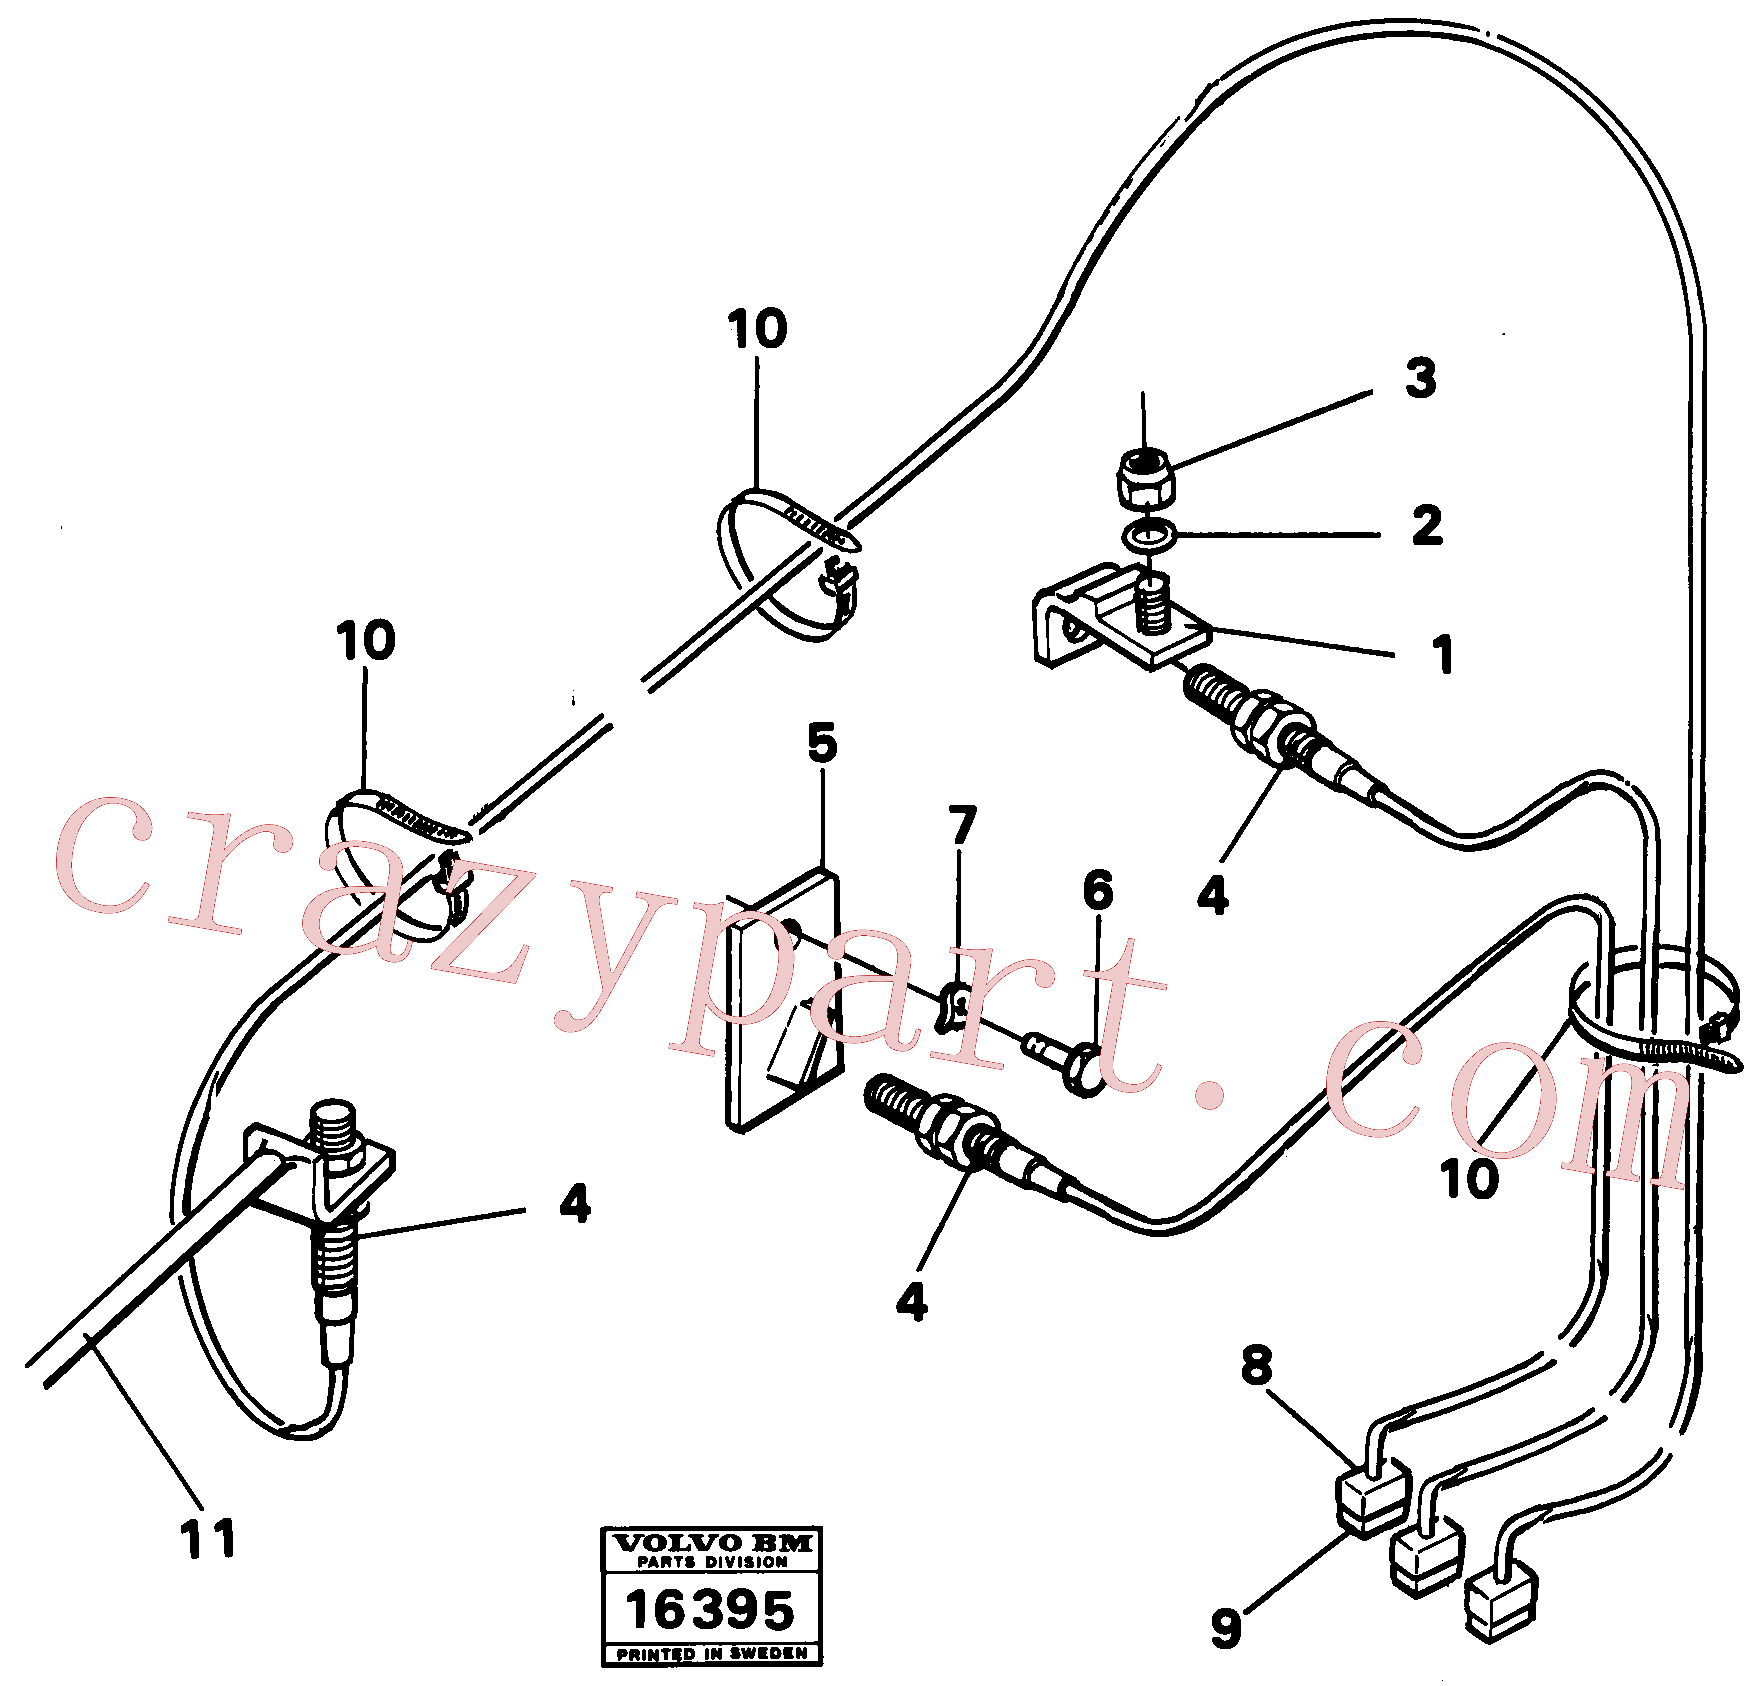 VOE965824 for Volvo Bucket automatic and lift automatic(16395 assembly)